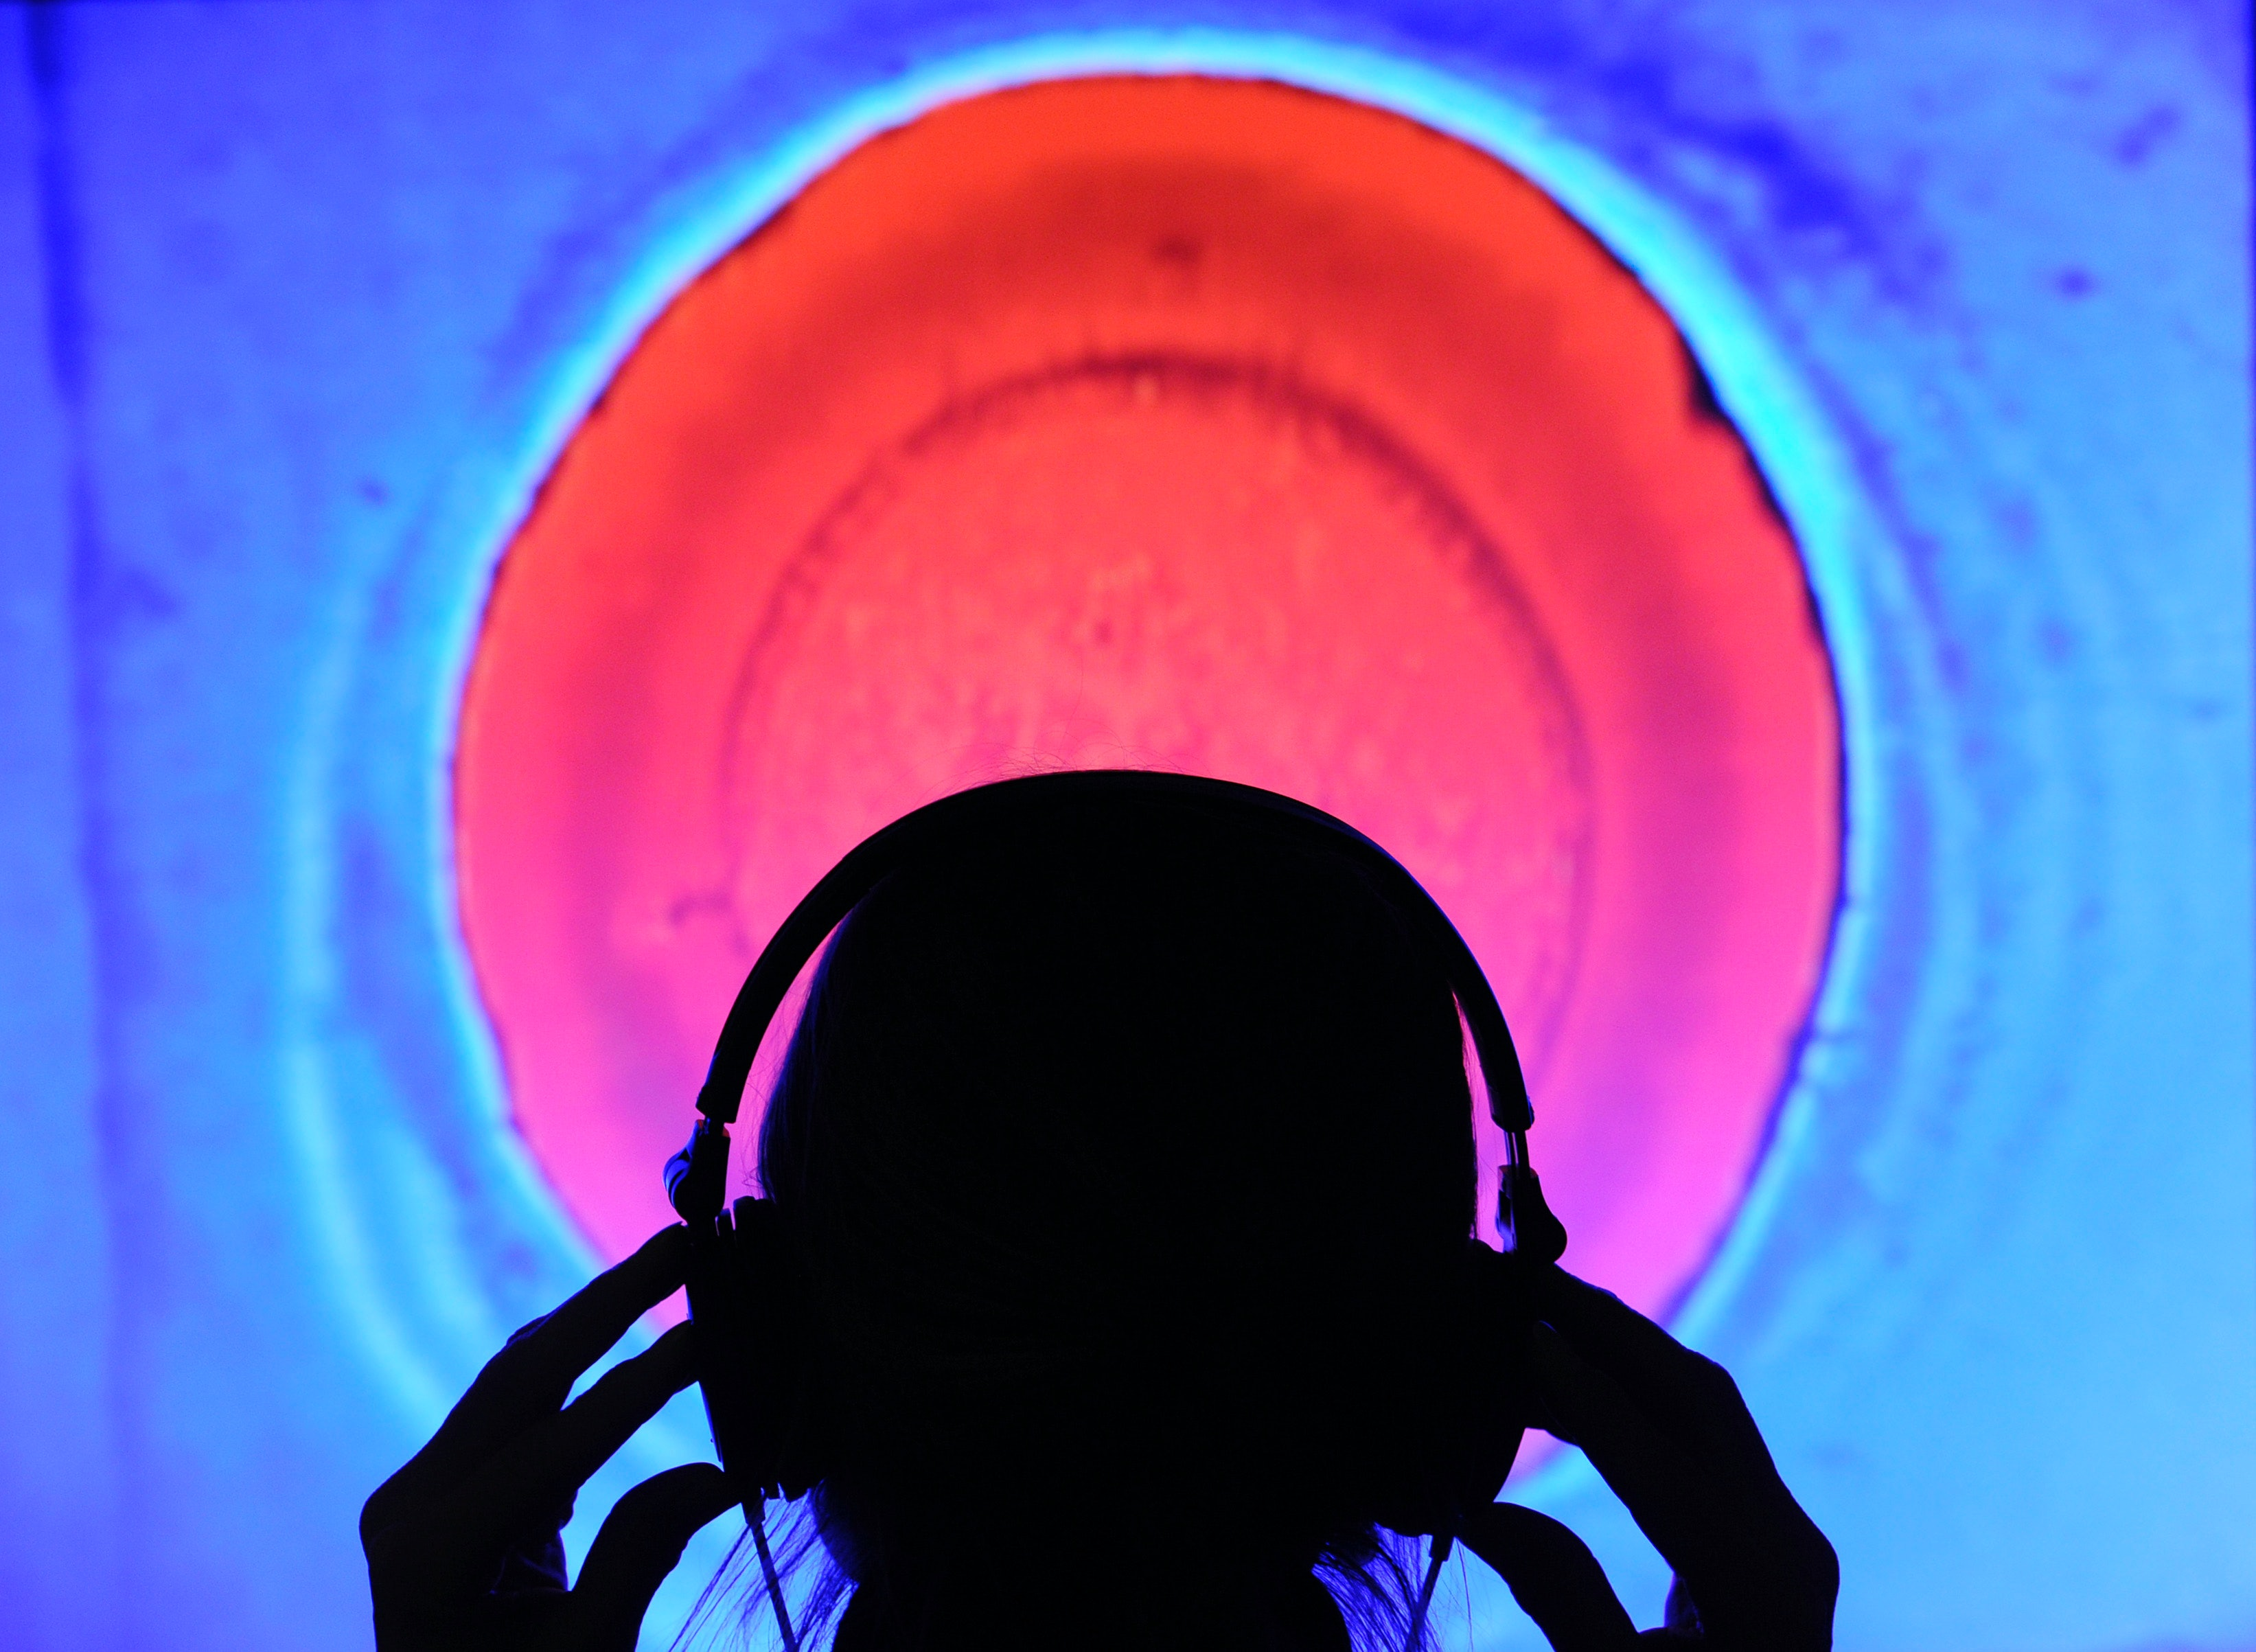 Best Spotify Playlists To Work To That Will Help You Focus